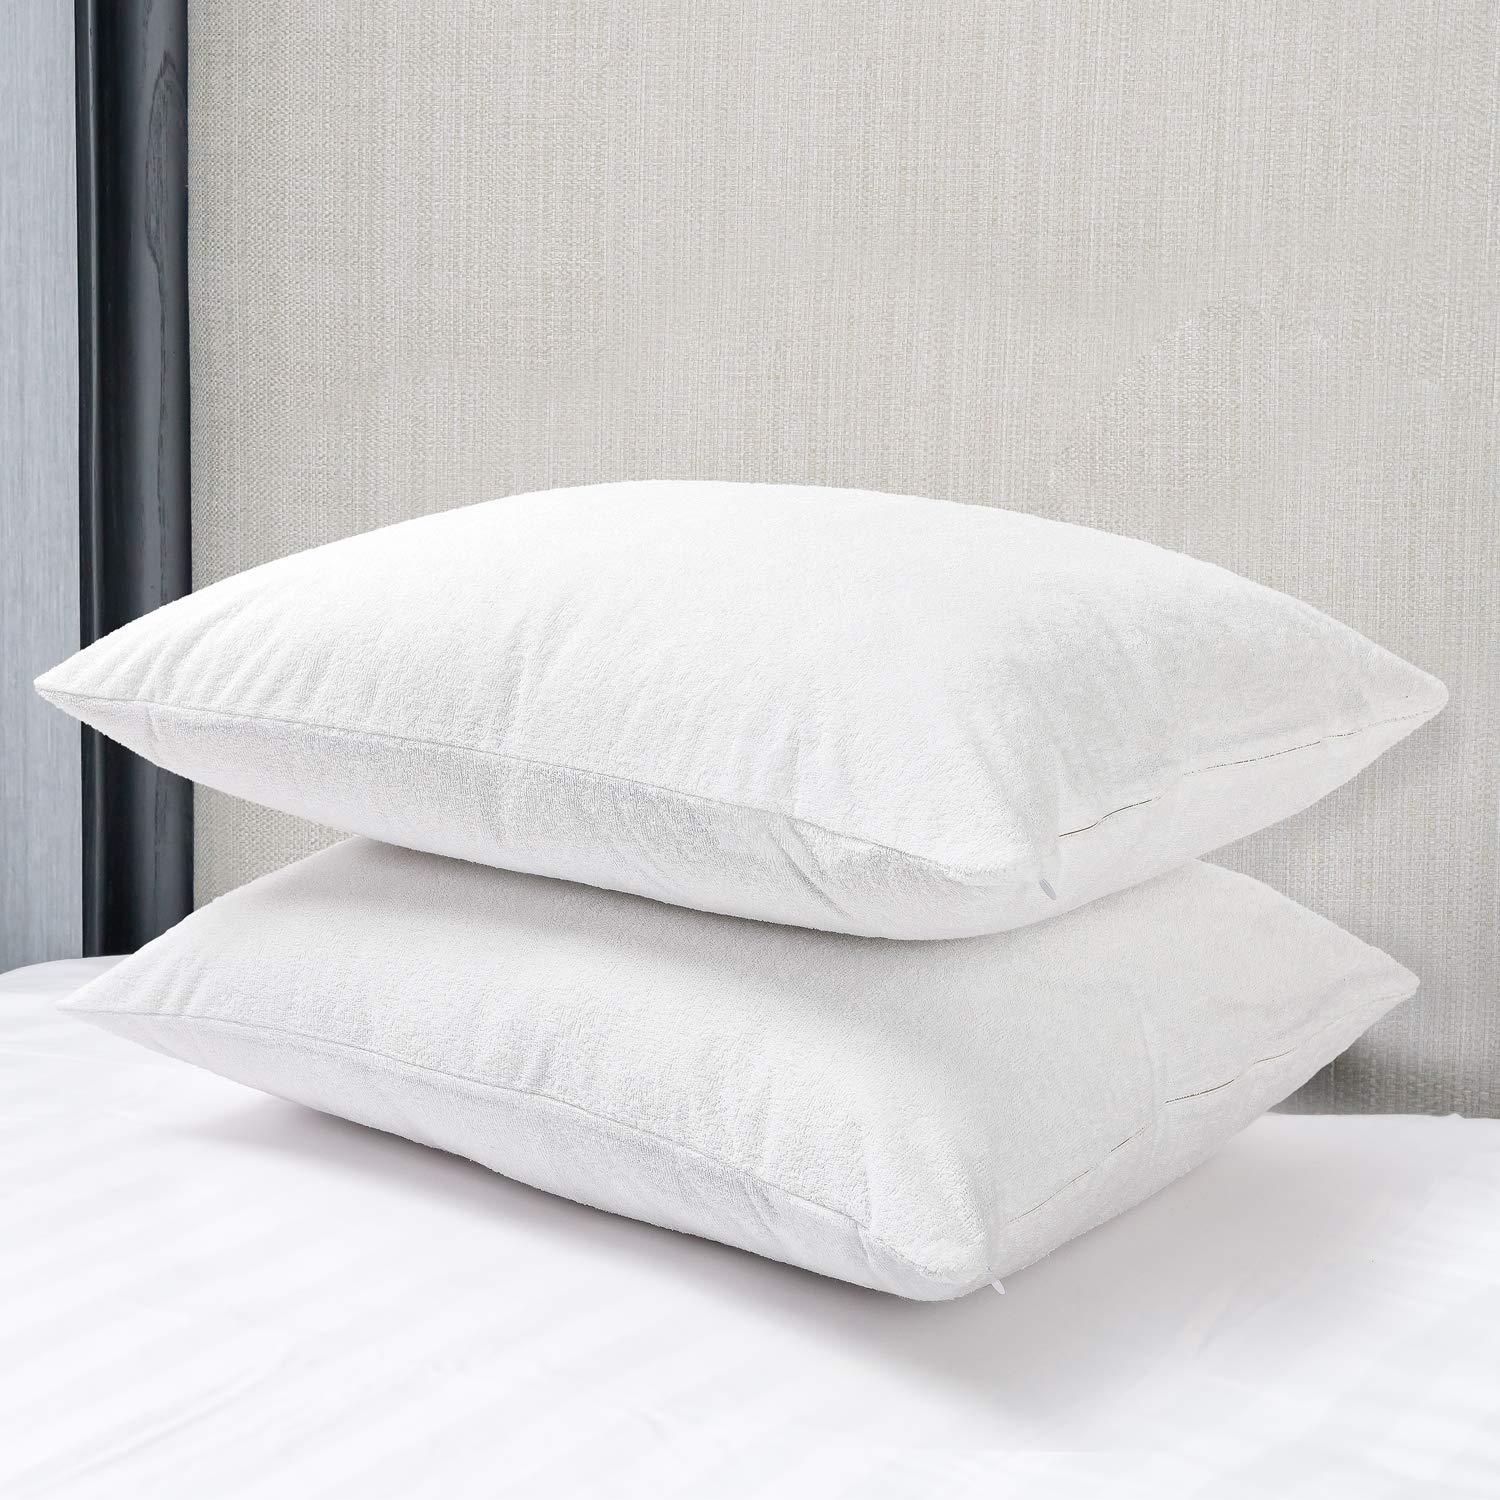 EXQ Home 100/% Waterproof Pillow Protectors Set of 2 Standard Size Zippered Bamboo Cooling Pillowcase Dust Mite Hypoallergenic Pillow Covers